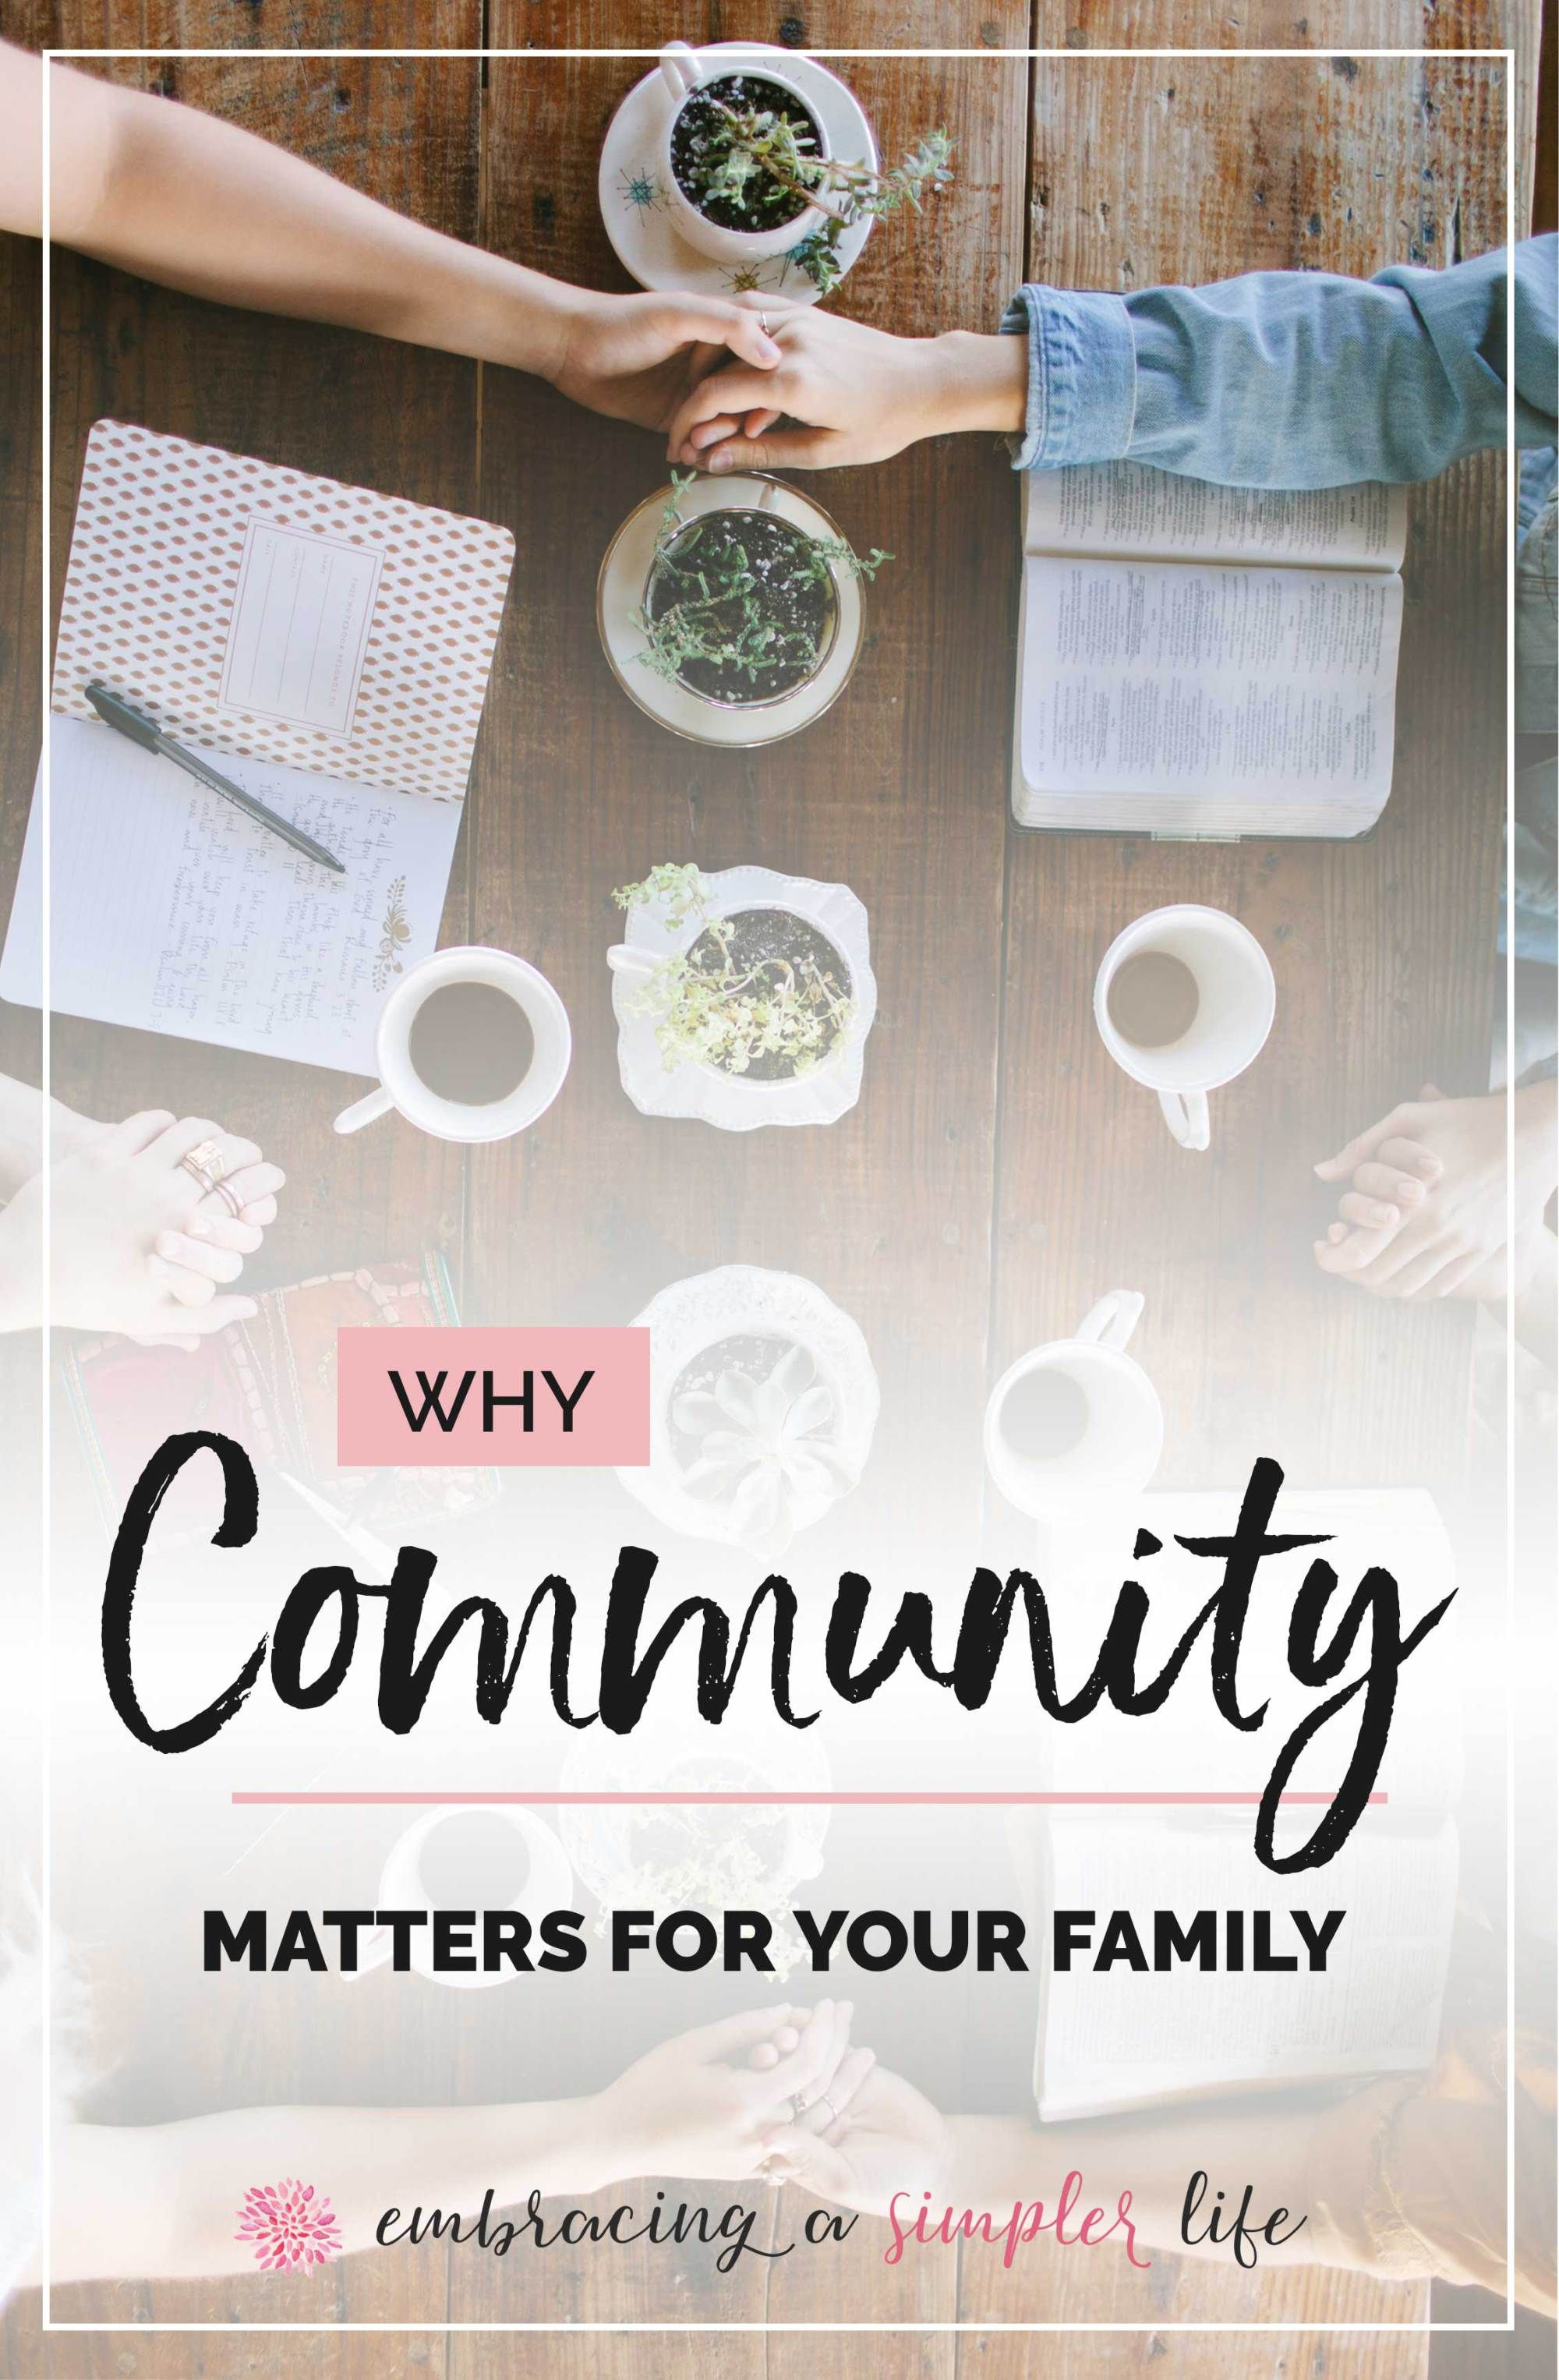 Why Community Matters For Your Family